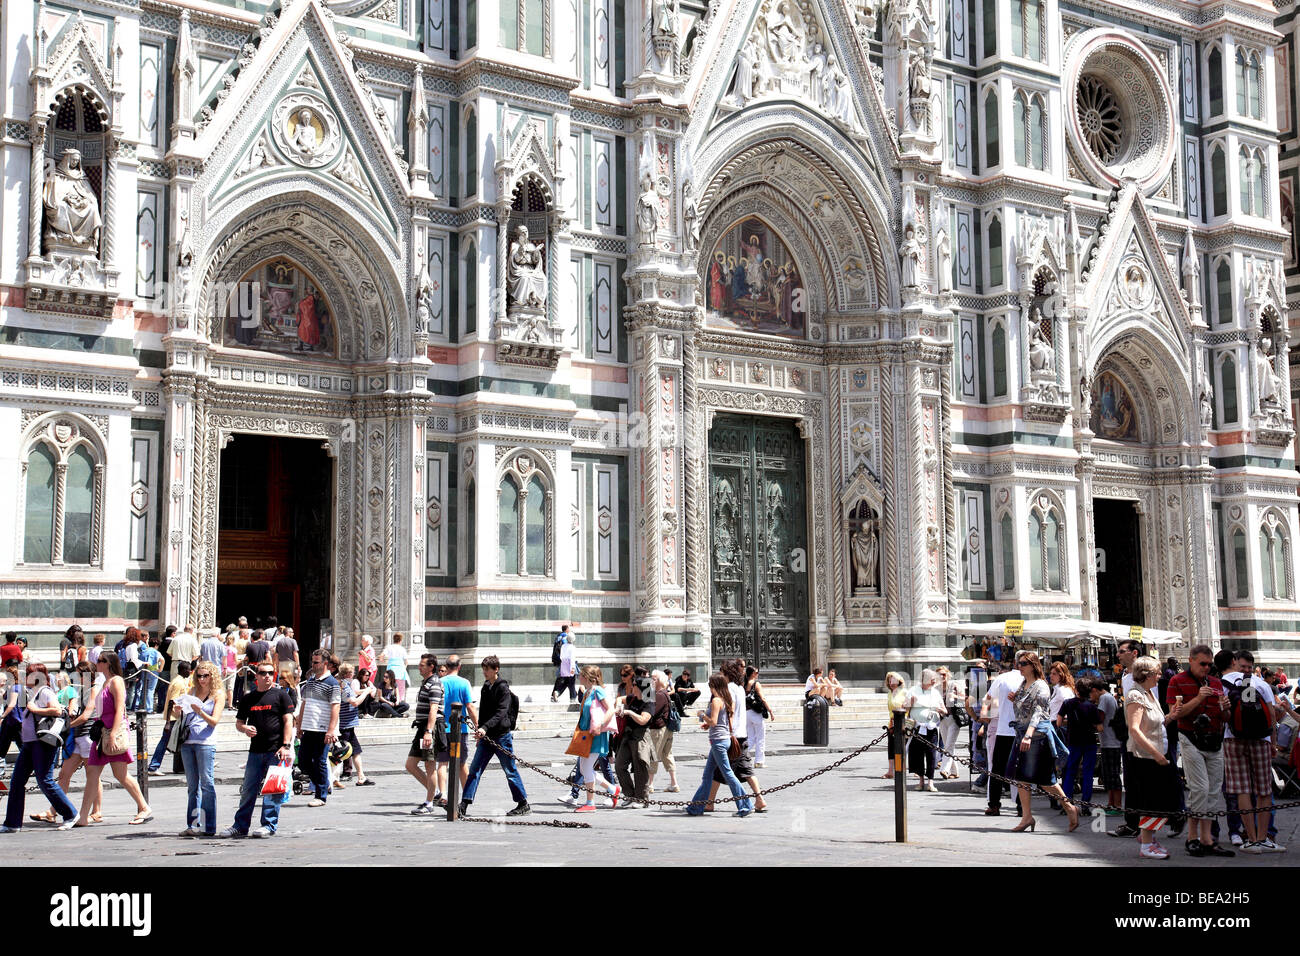 Visitors outside the Duomo in Florence Italy - Stock Image